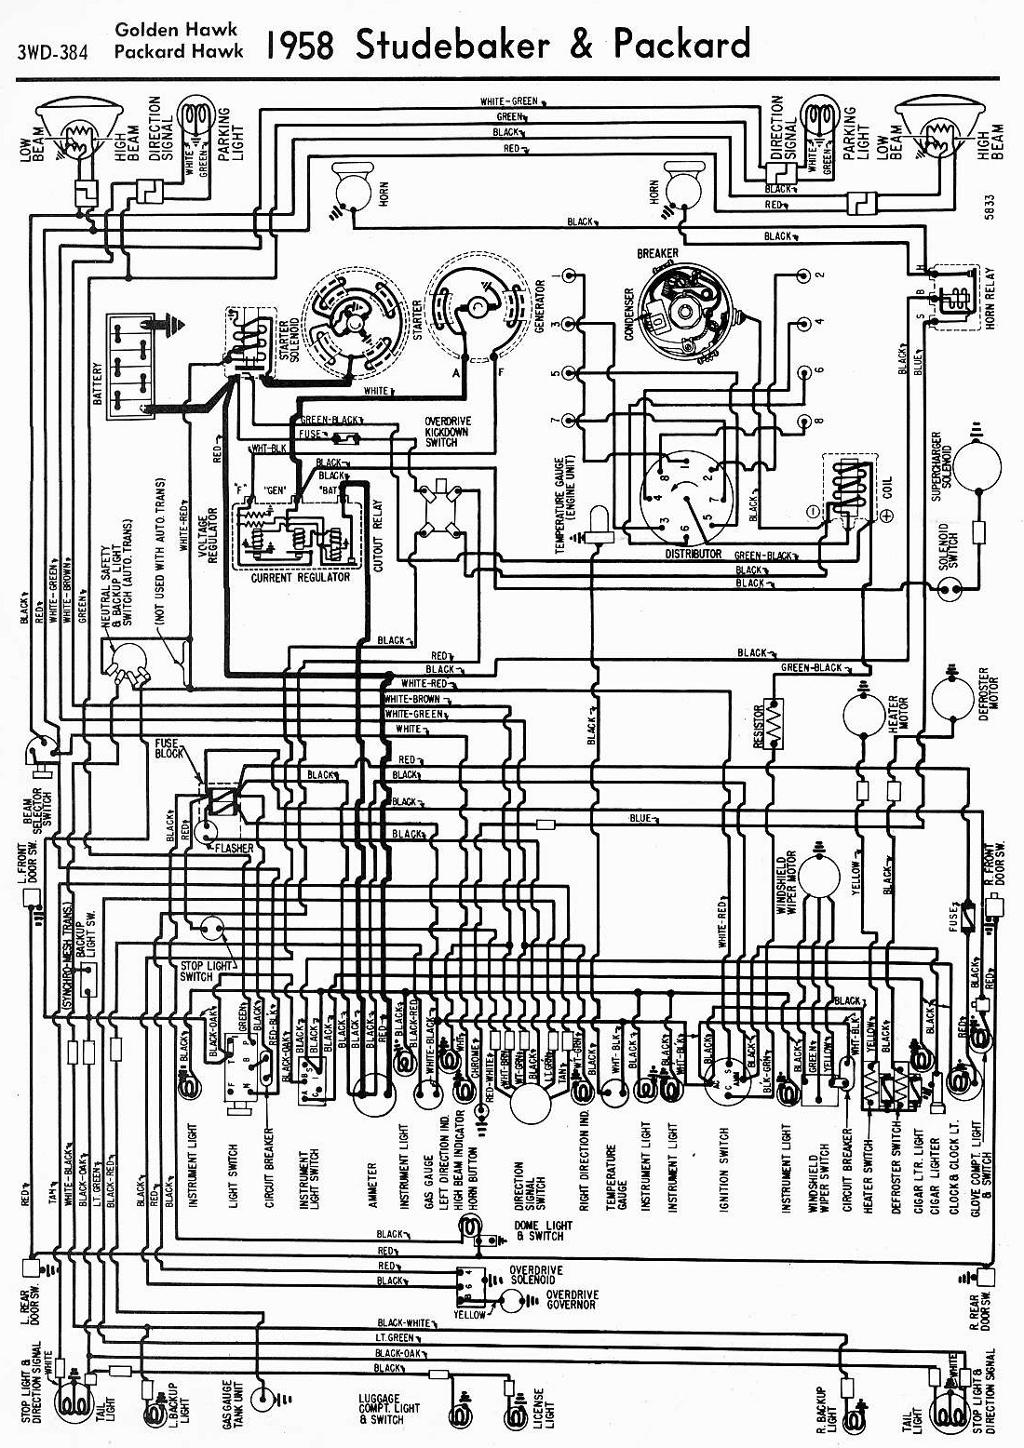 1946 packard wiring diagram free download wiring diagrams pictures rh abetter pw